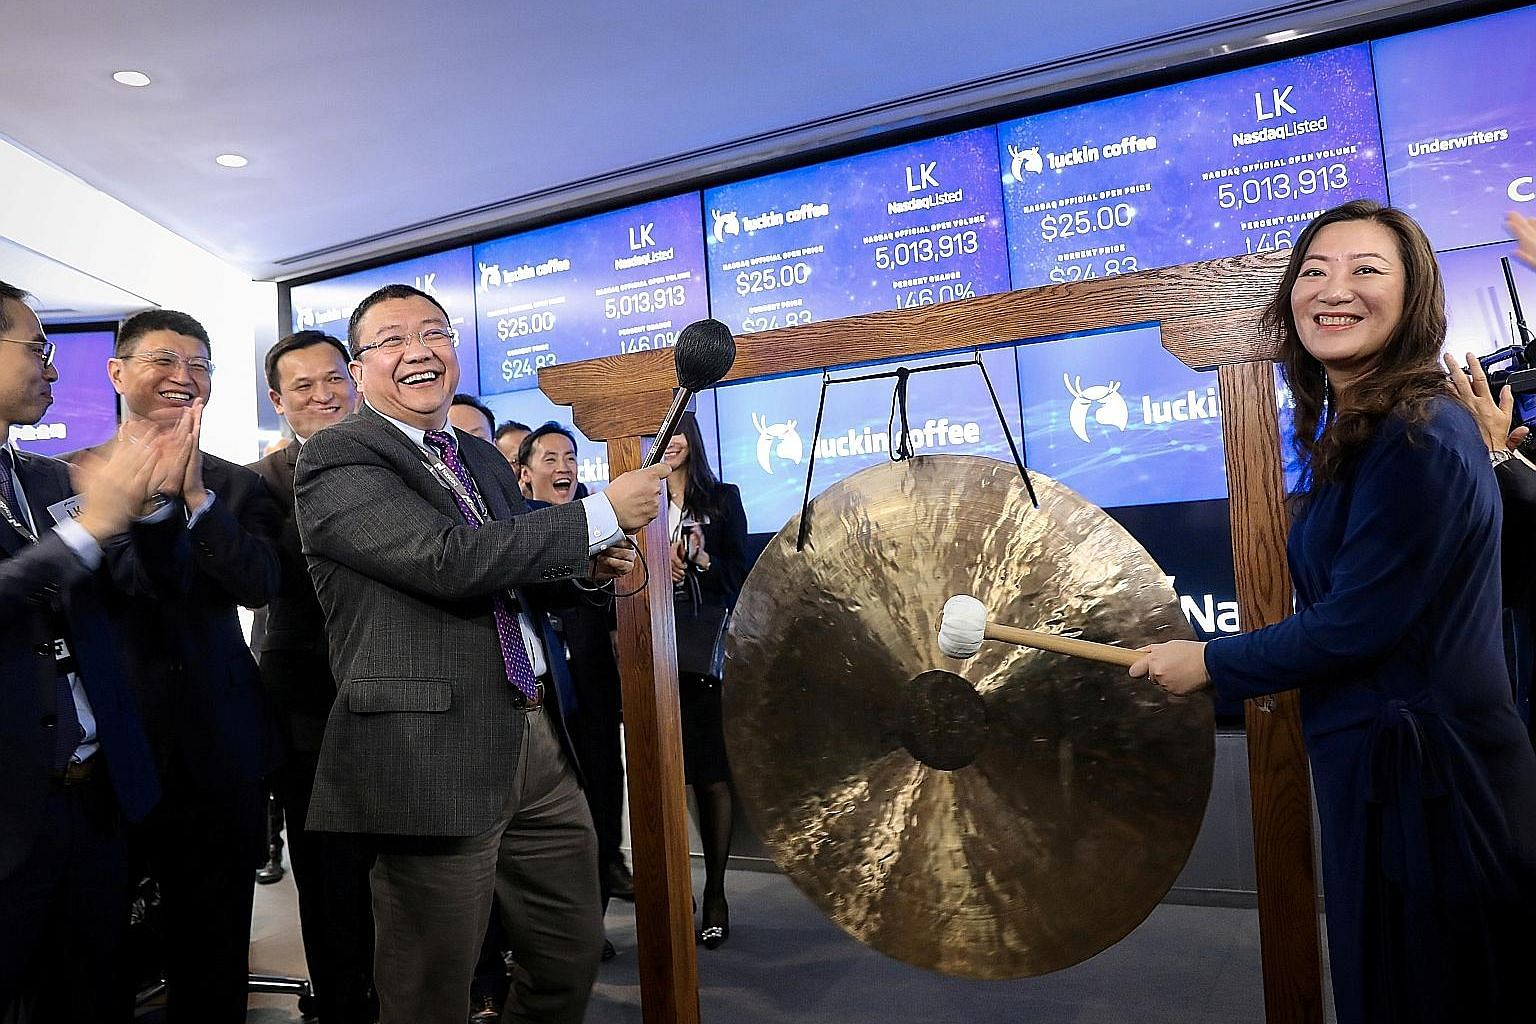 Luckin Coffee's chairman Charles Lu Zhengyao and then chief executive Jenny Qian Zhiya celebrating the company's initial public offering at the Nasdaq MarketSite in New York in May last year.